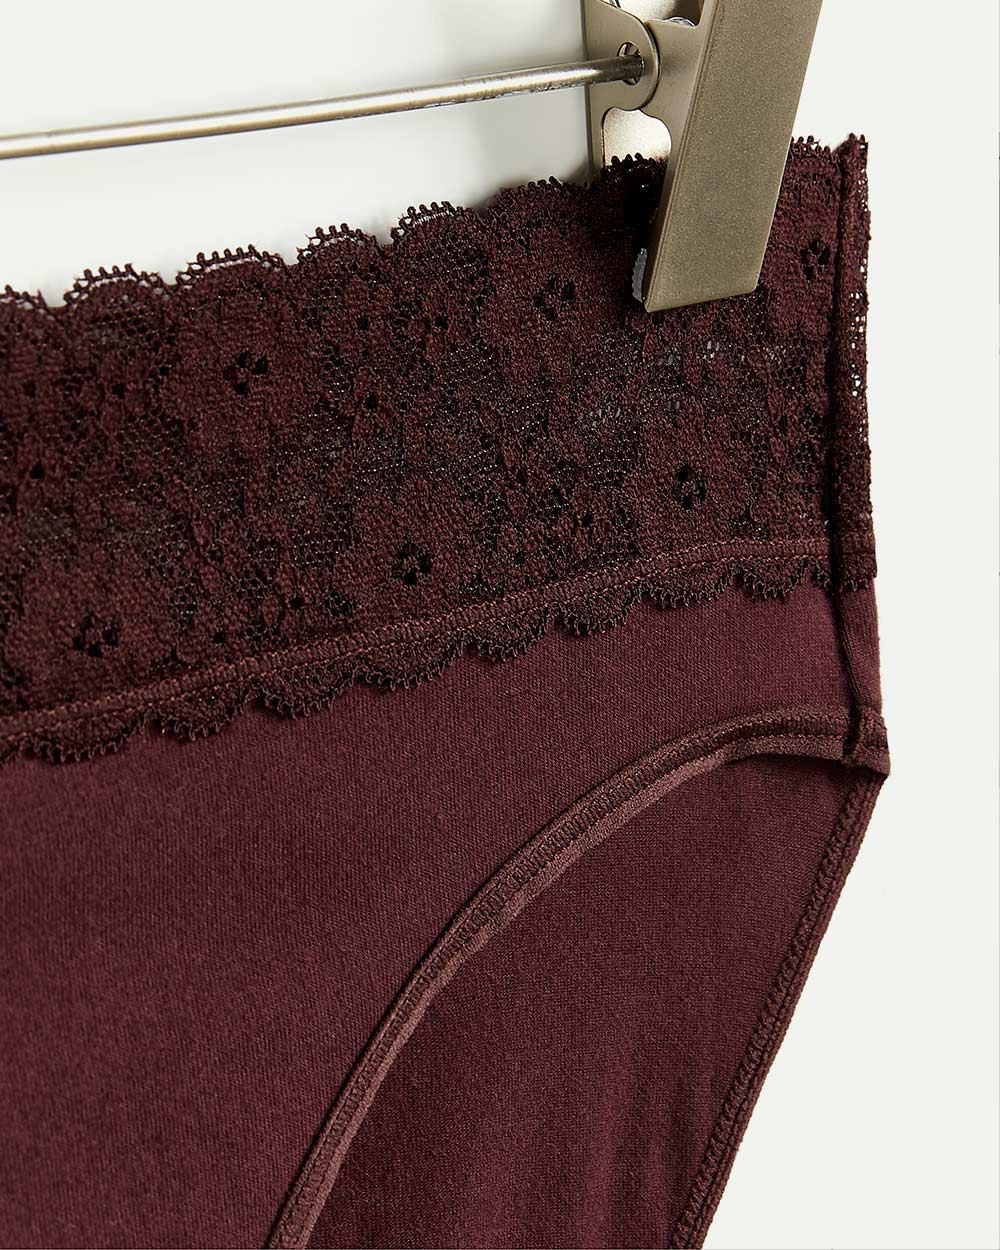 Cotton High Waist Panty with Lace